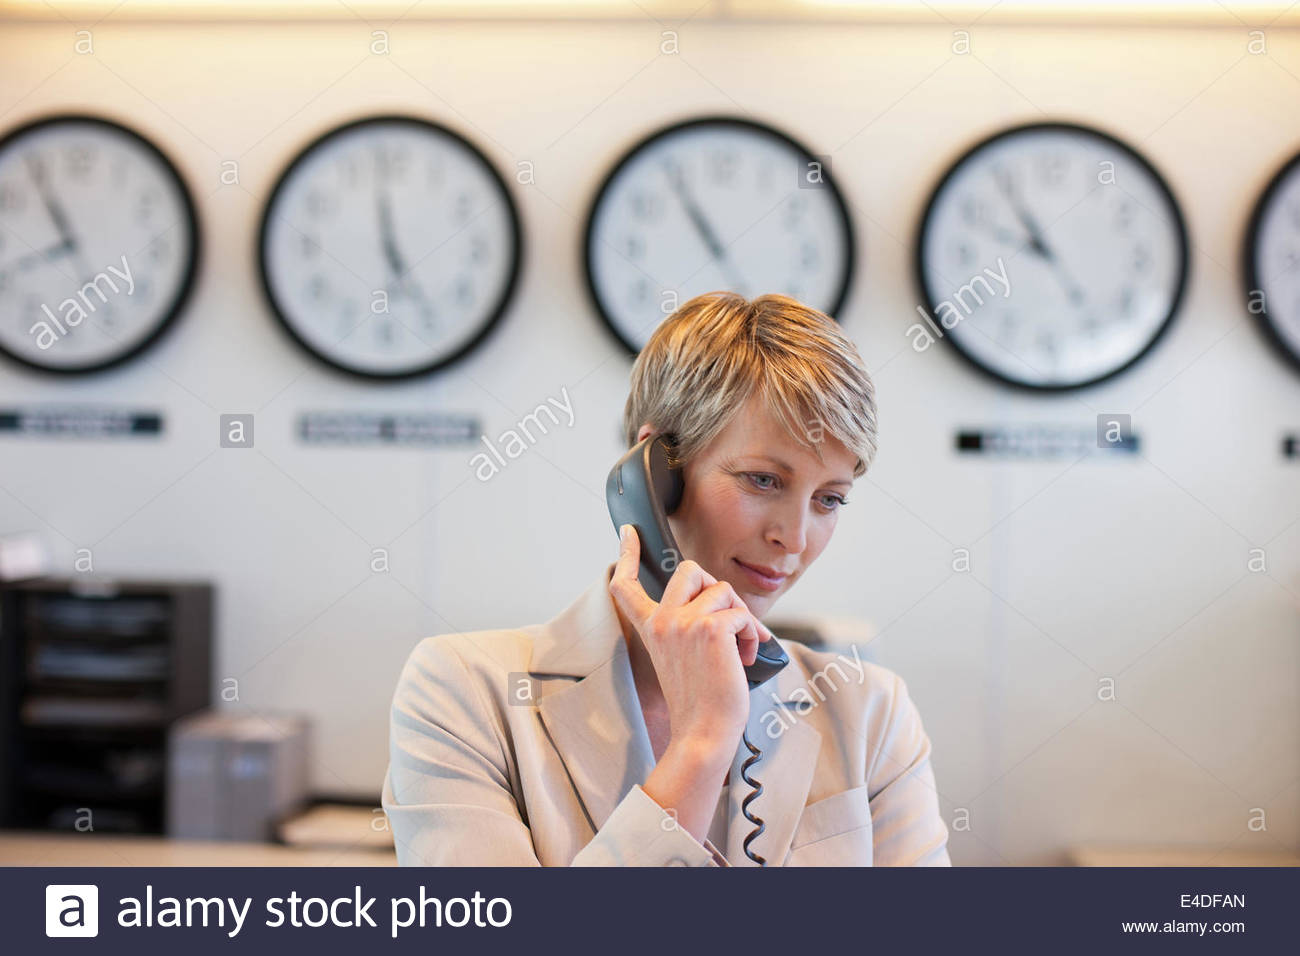 Businesswoman talking on phone in office Photo Stock